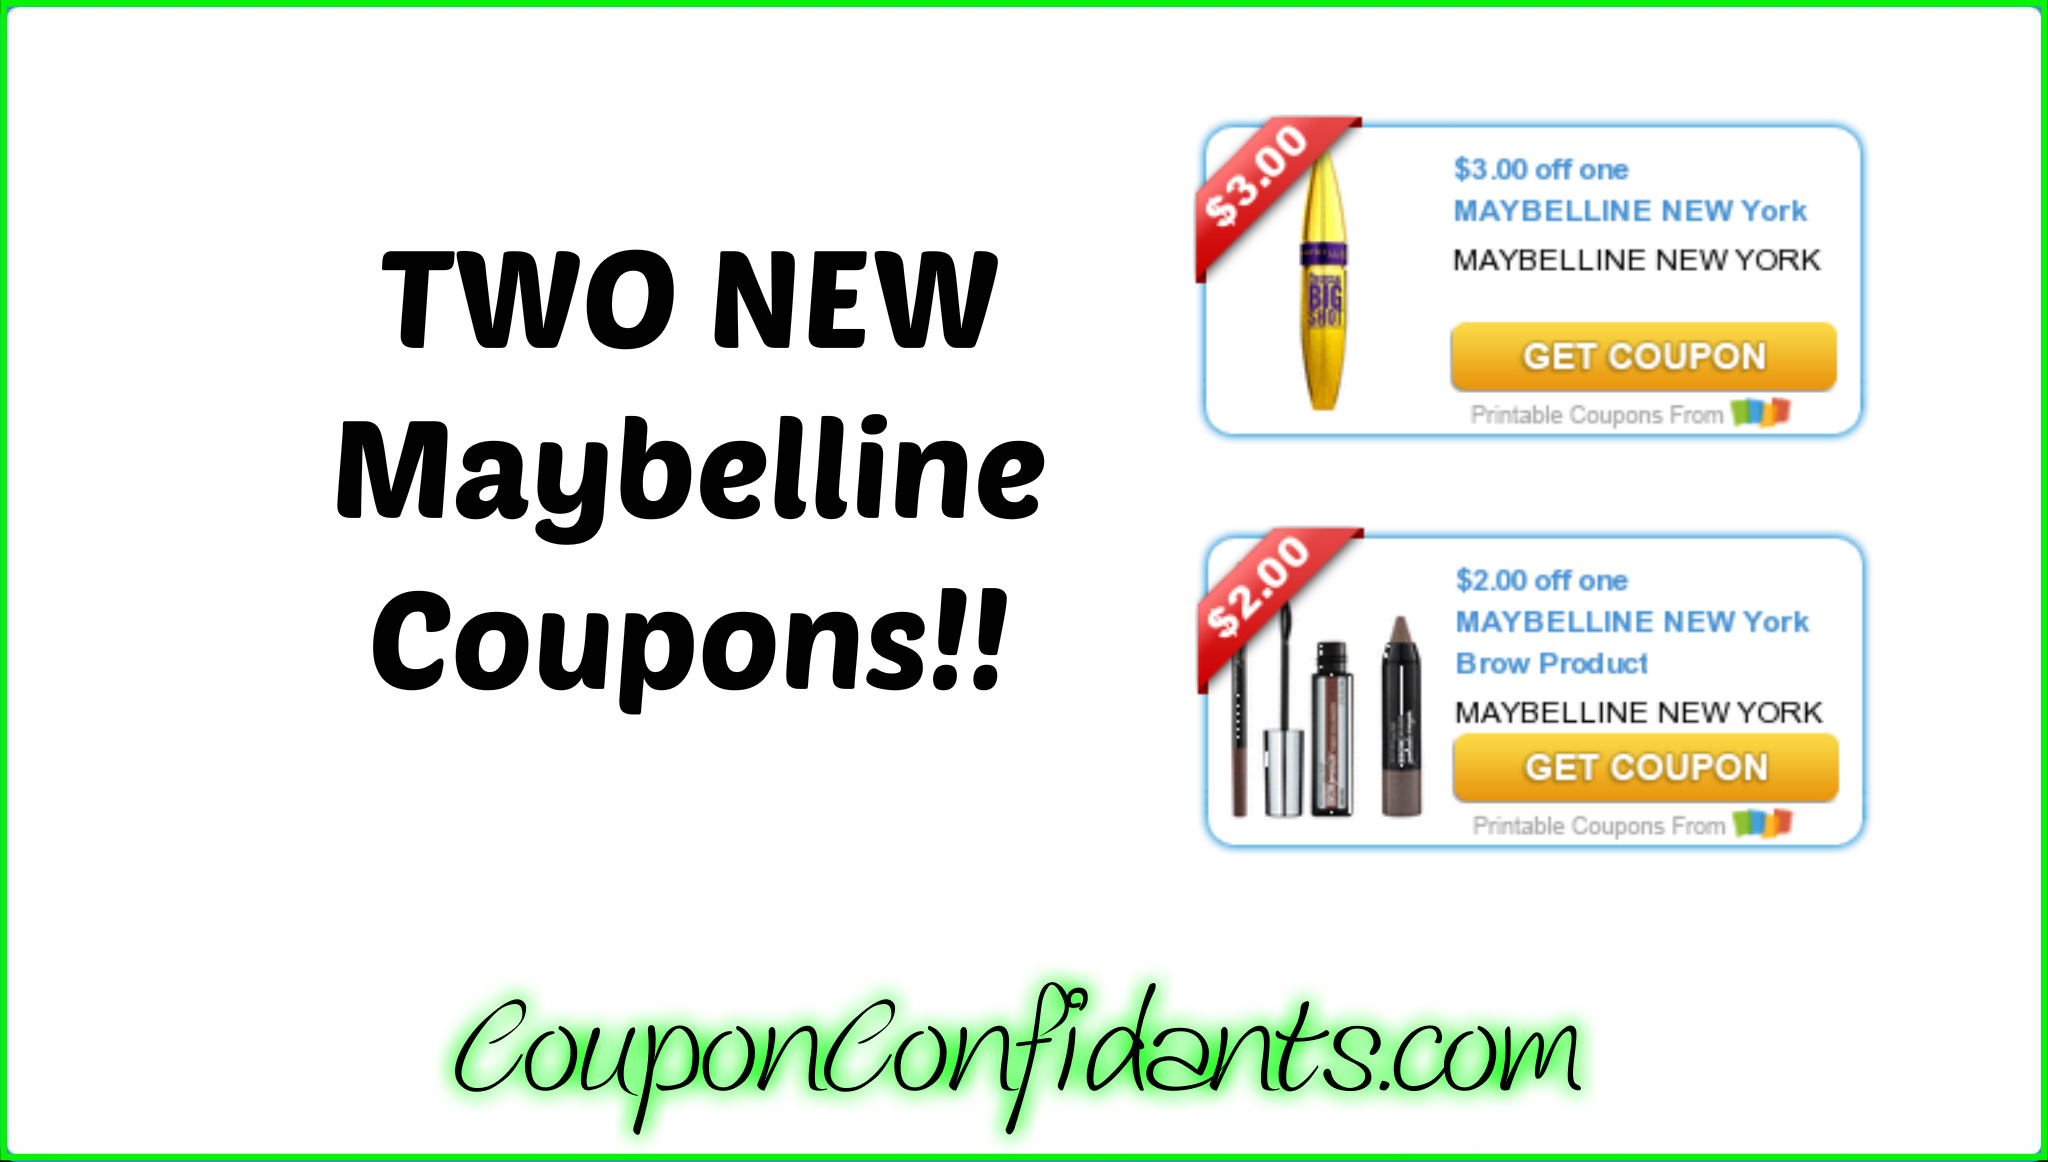 photograph regarding Printable Maybelline Coupons named Clean Maybelline Discount coupons toward stack with the foreseeable future Focus